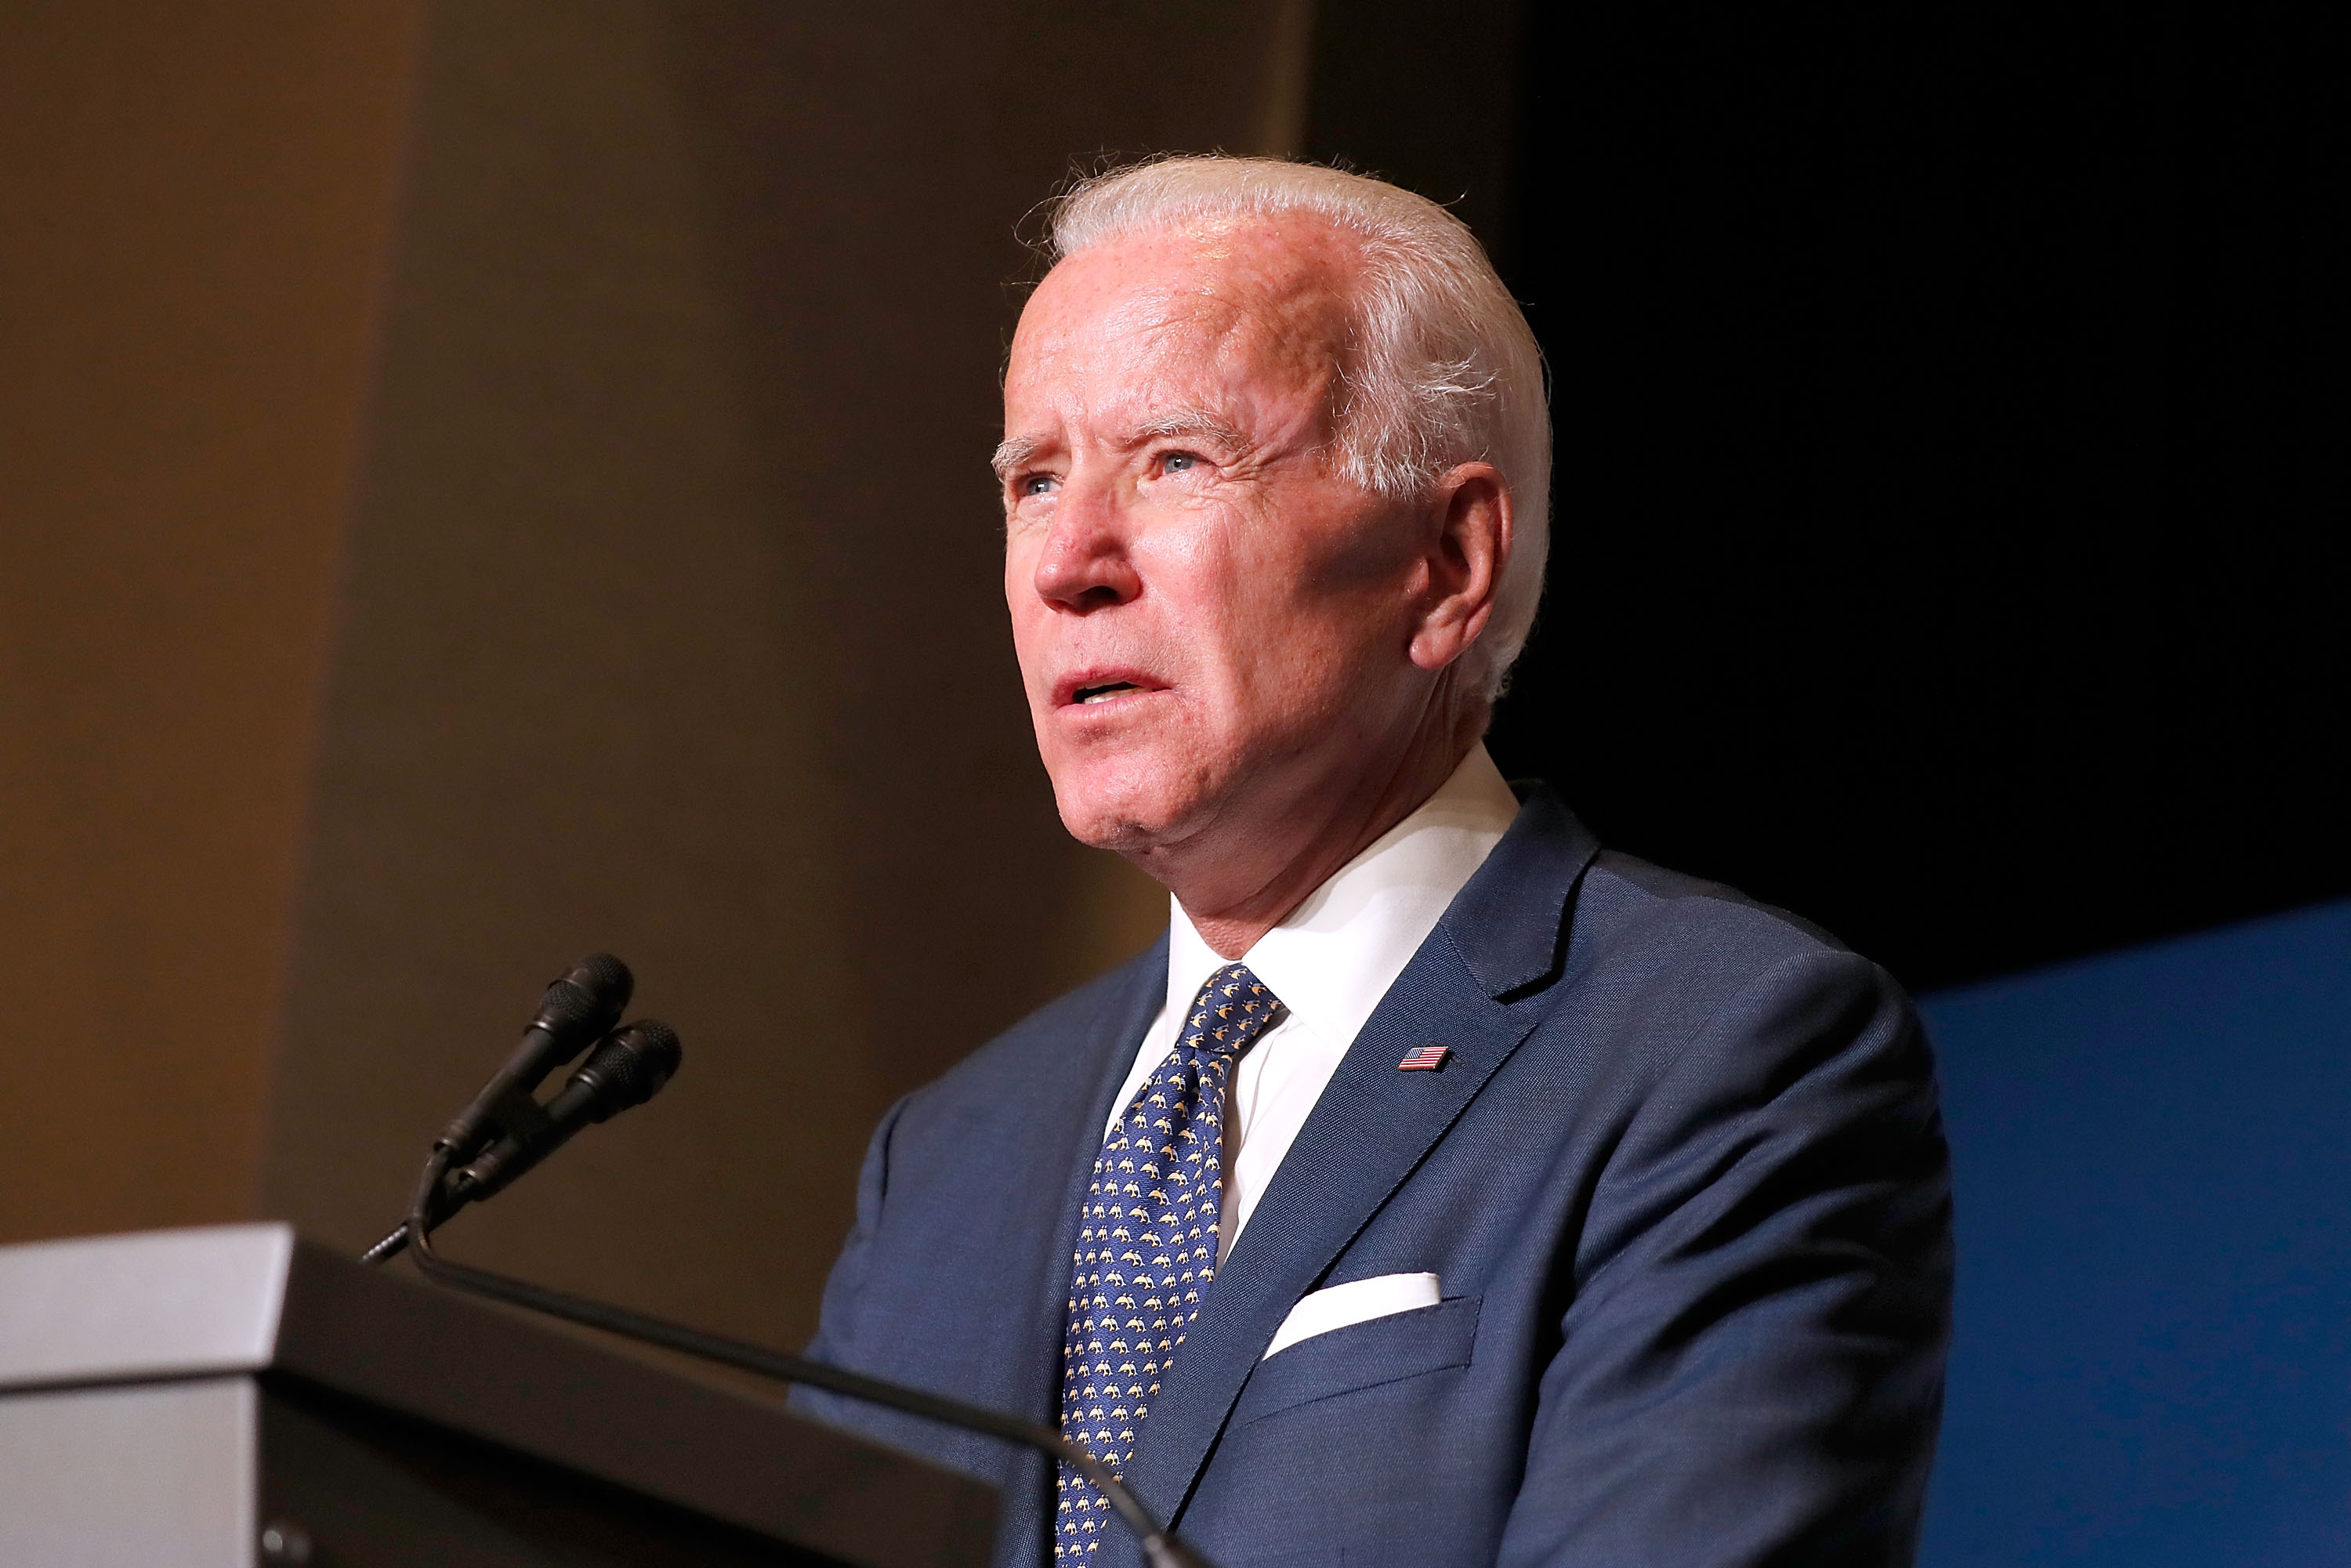 Biden Age Would Be Legitimate Issue In Presidential Run Time